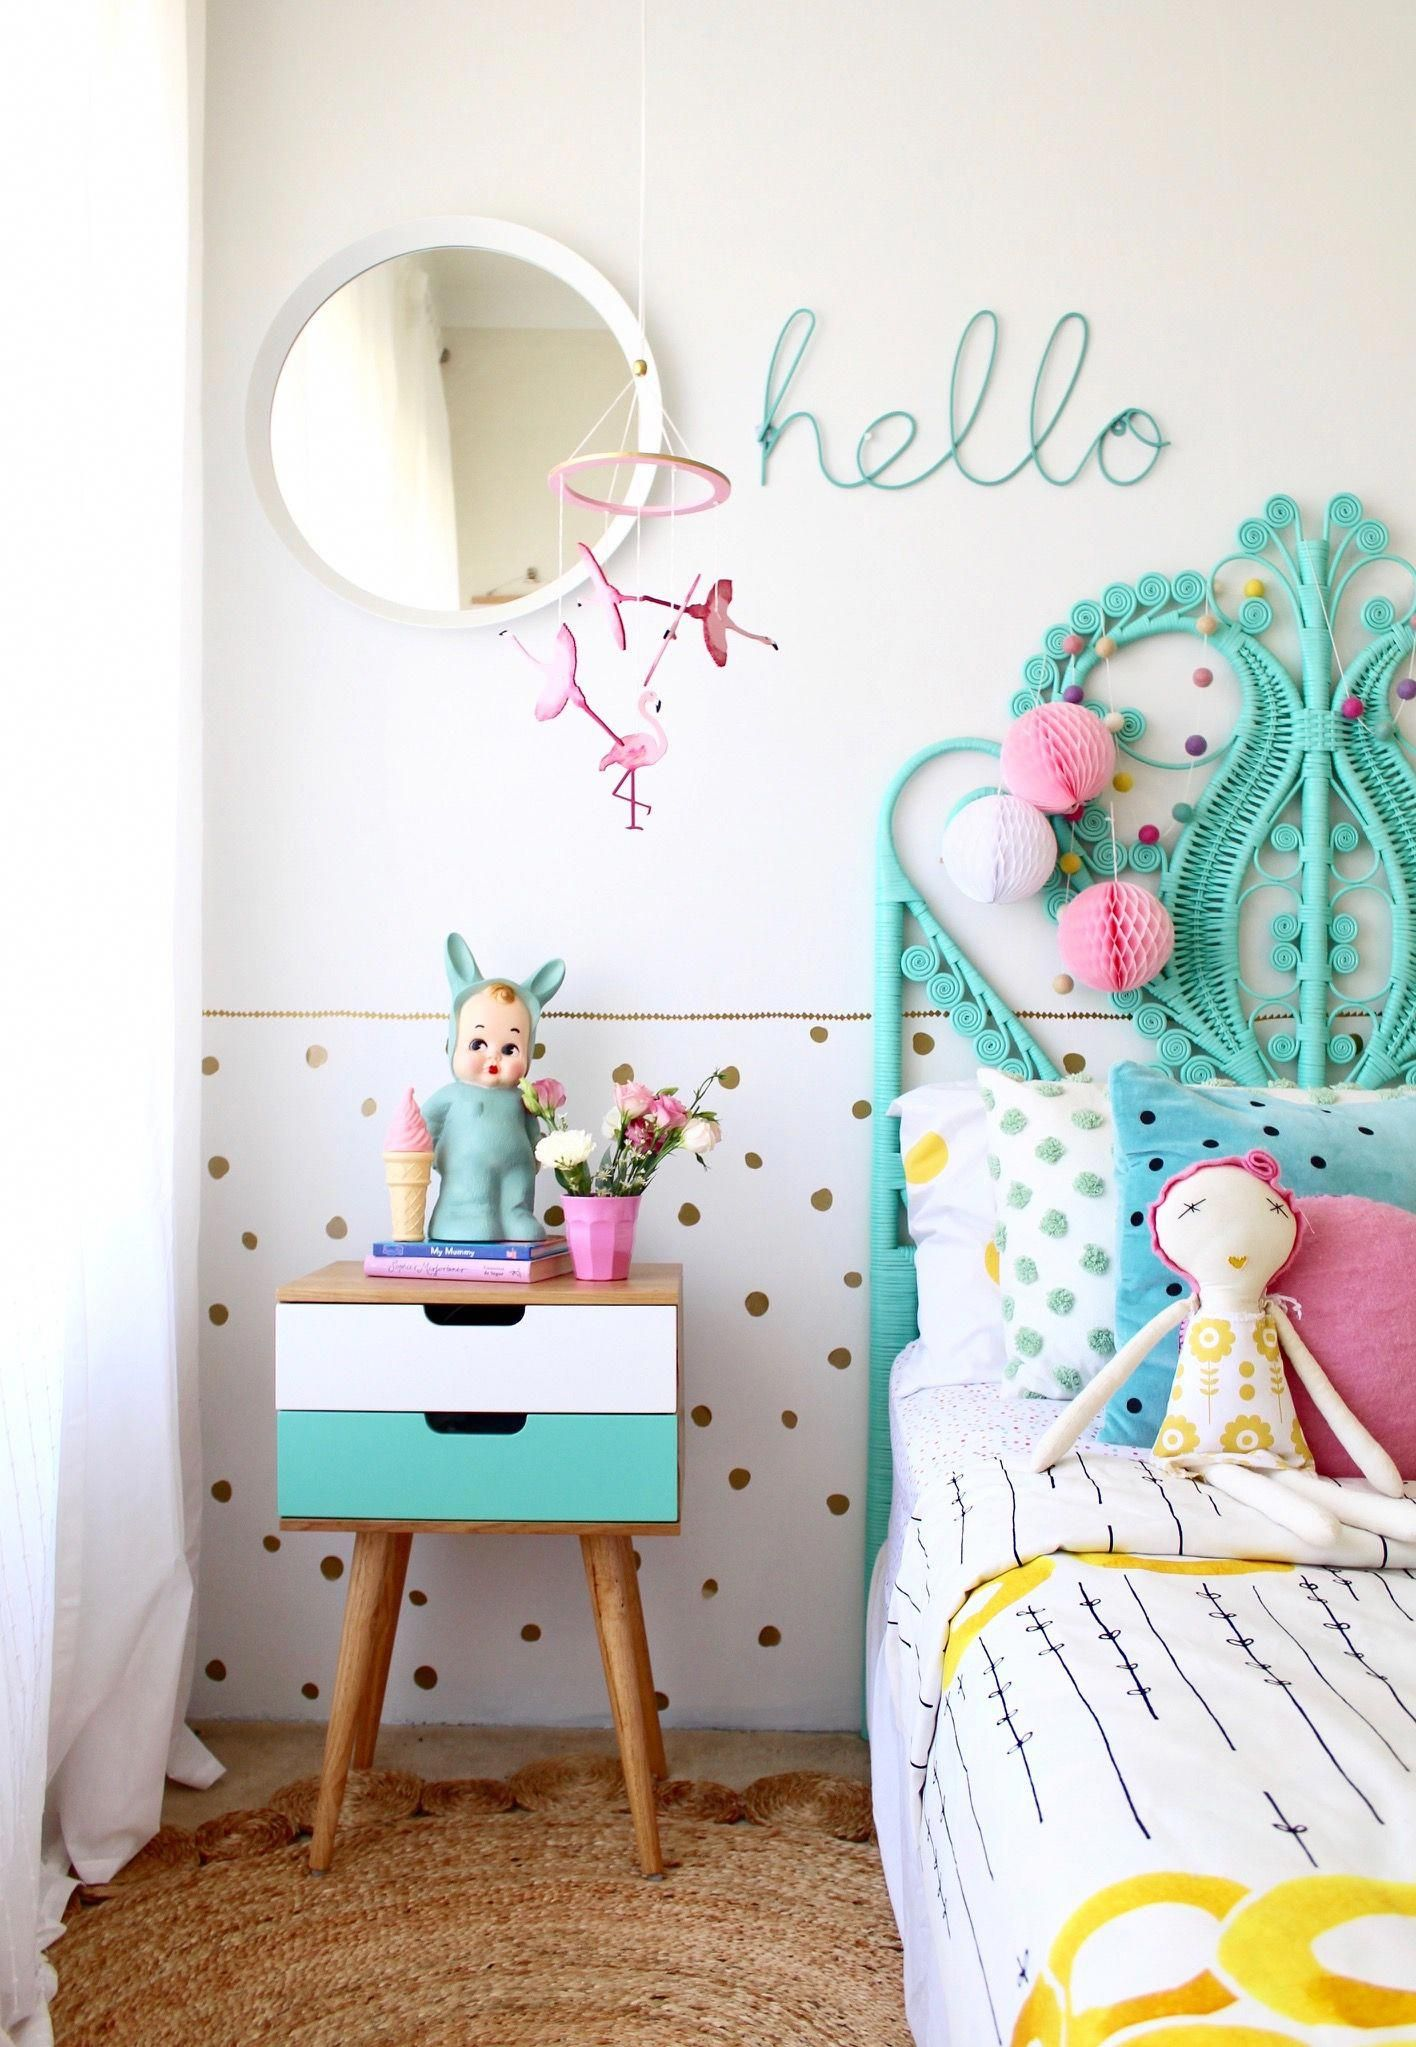 Kids Decor Spotlight Sun And Co Kids Interior Design Decor And Diy Decoracioncuartoprincesa Deco Chambre Deco Chambre Enfant